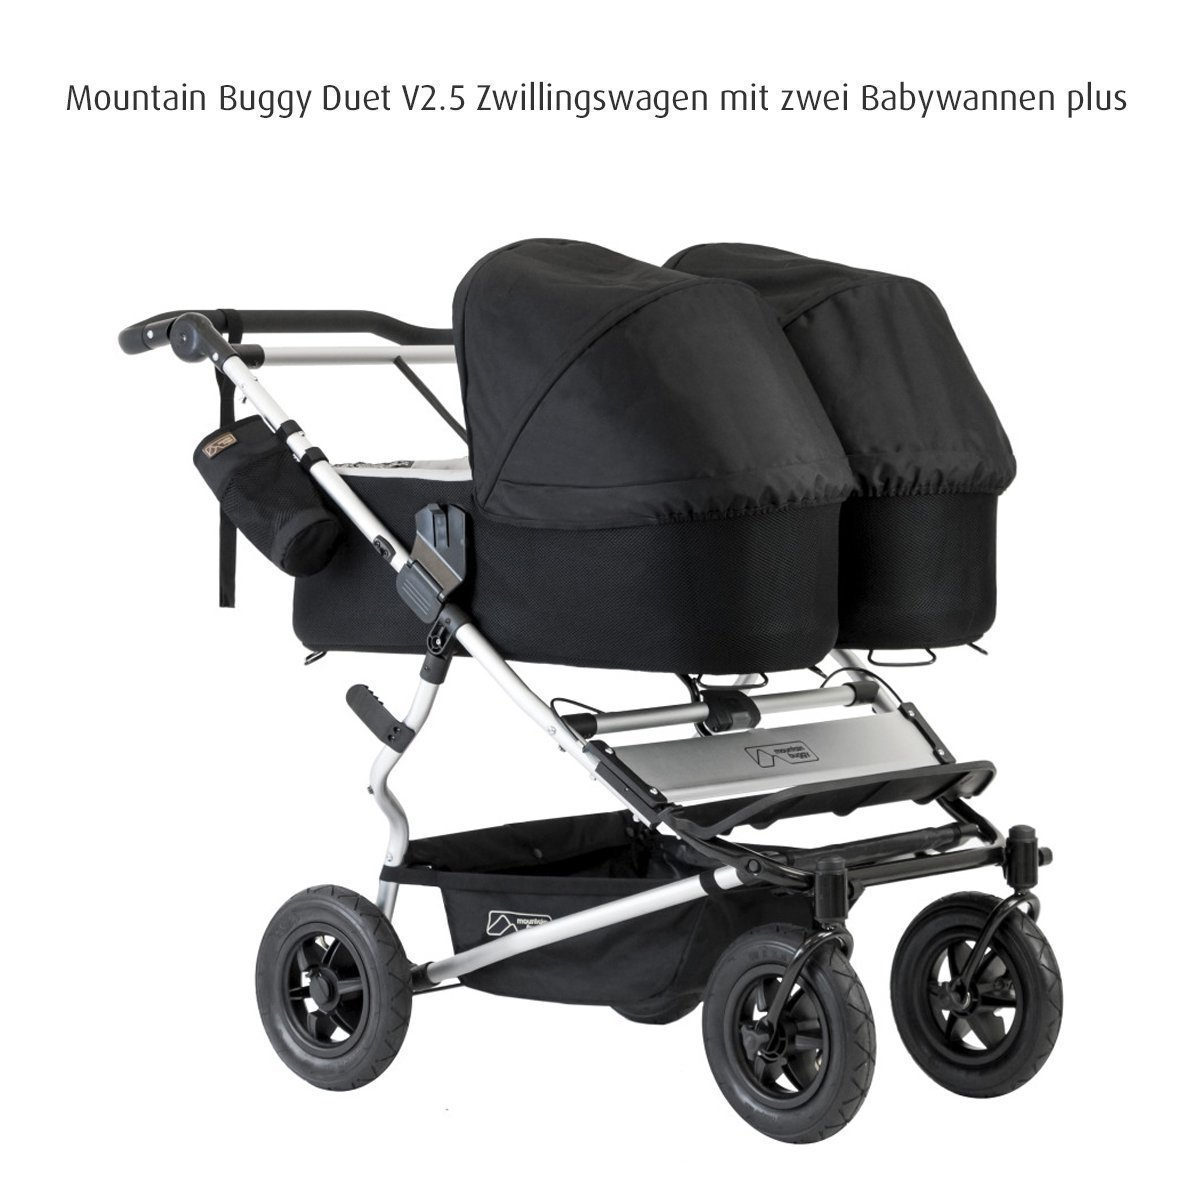 Mountain Buggy Carrycot Plus for Duet Double Stroller with Sunhood, Flint by Mountain Buggy (Image #3)